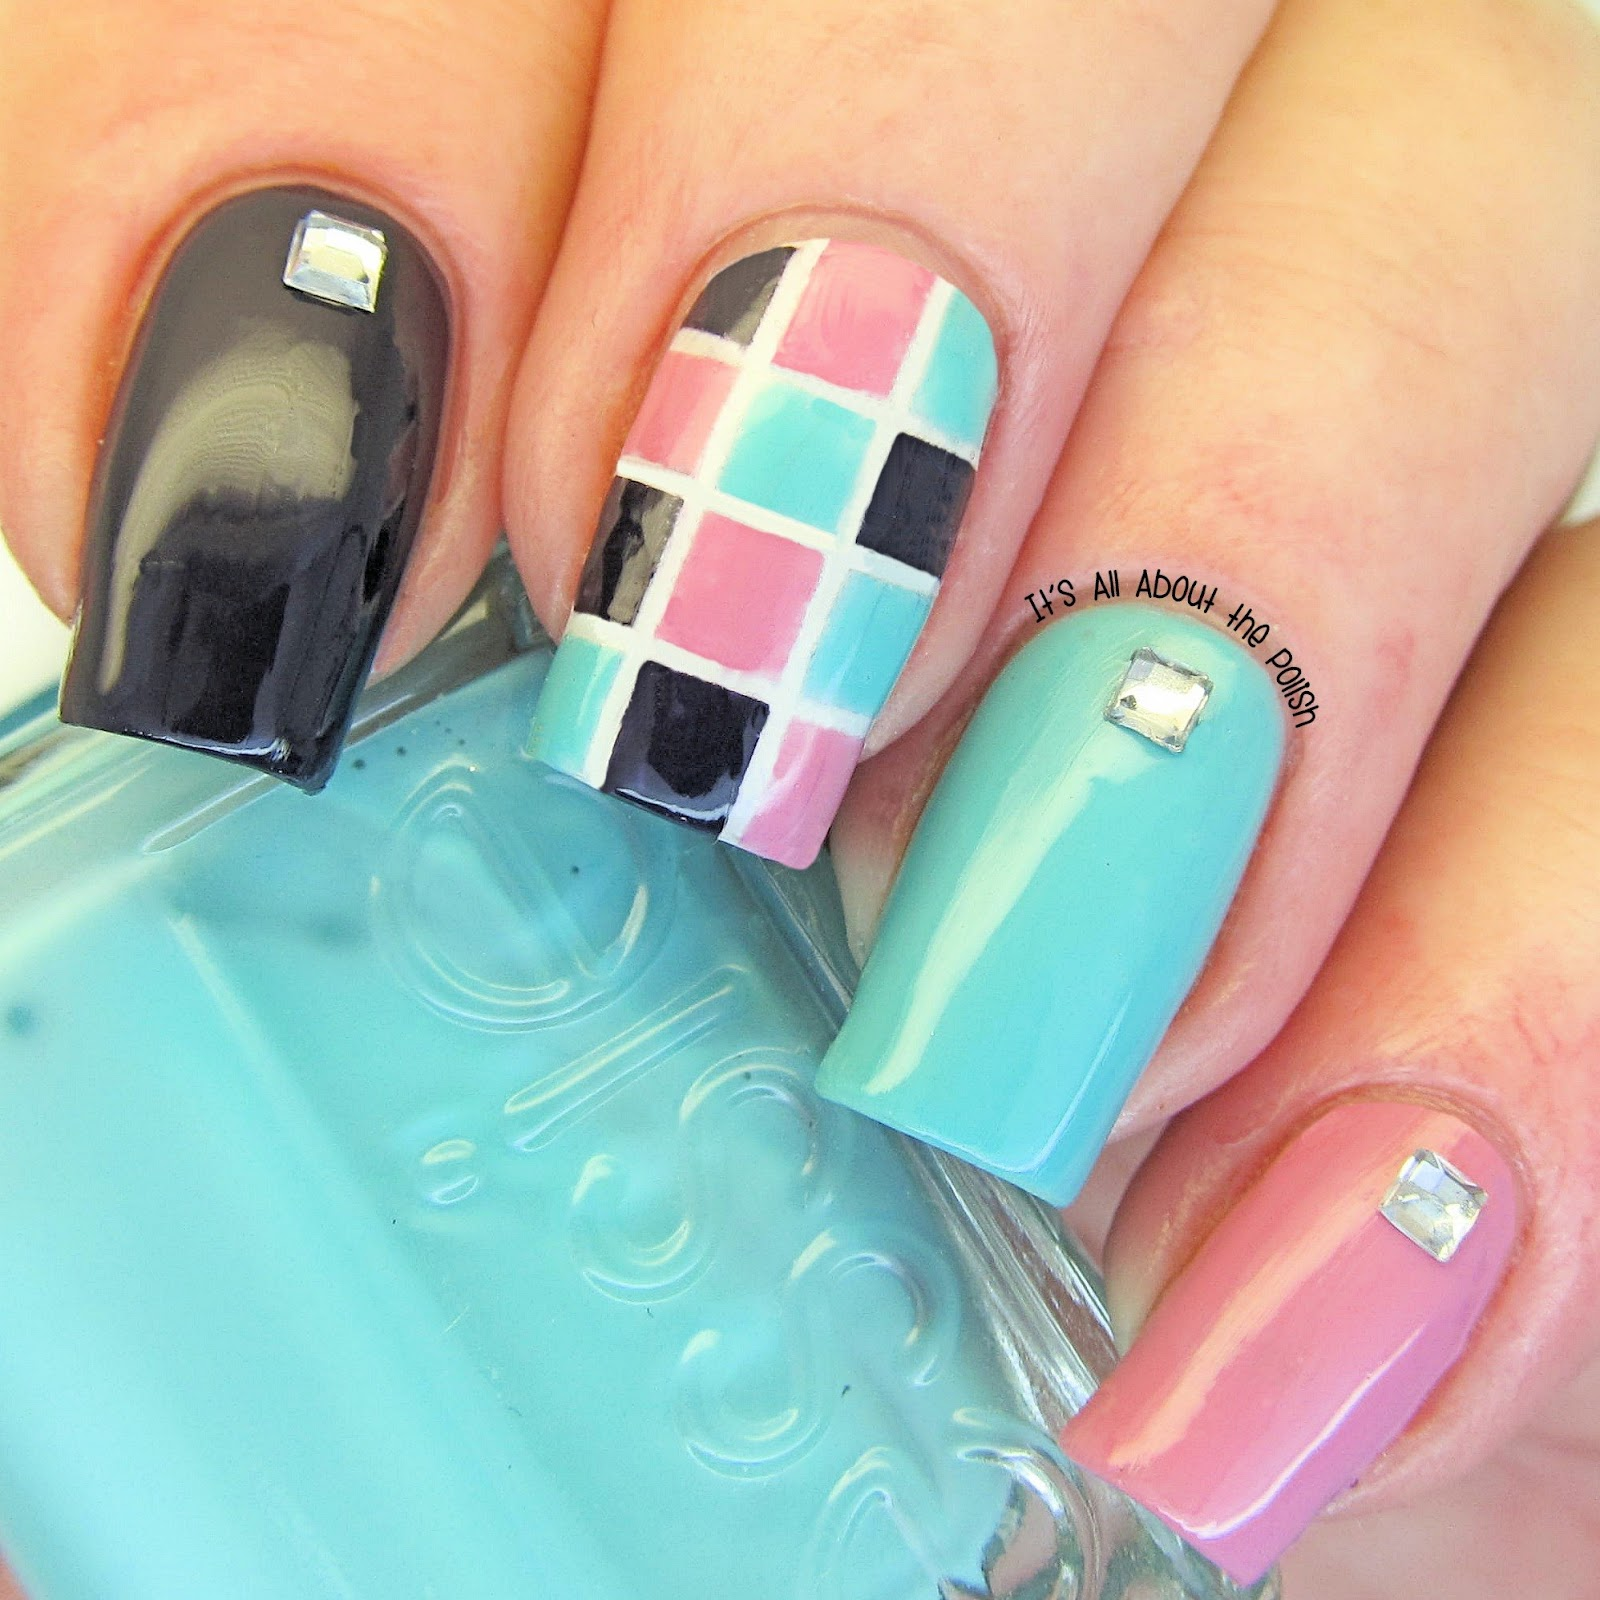 It's All About The Polish: Geometric Square Nail Art